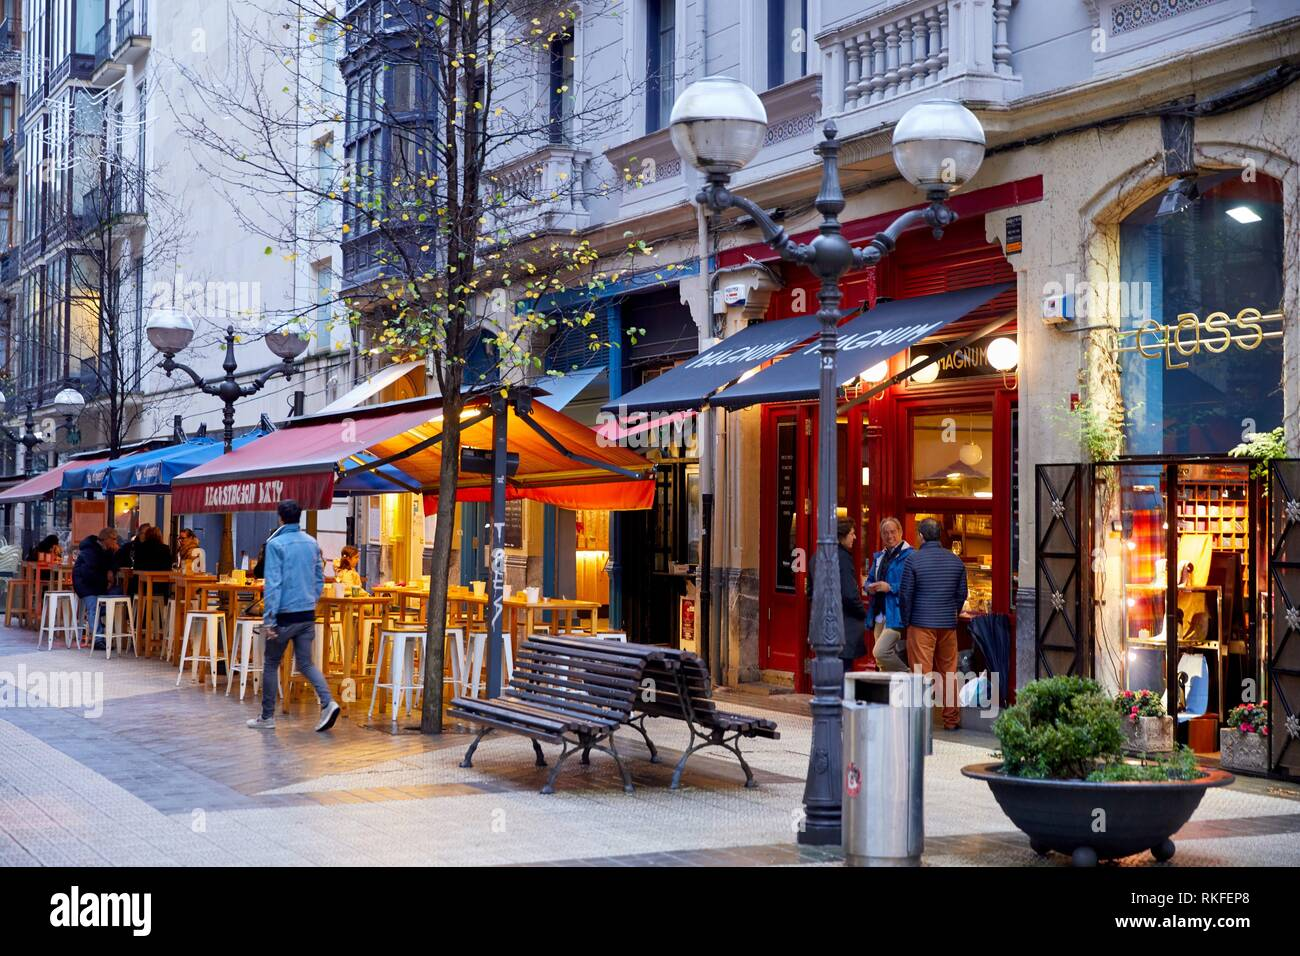 Spain Basque Country Bilbao Bar High Resolution Stock Photography And Images Alamy